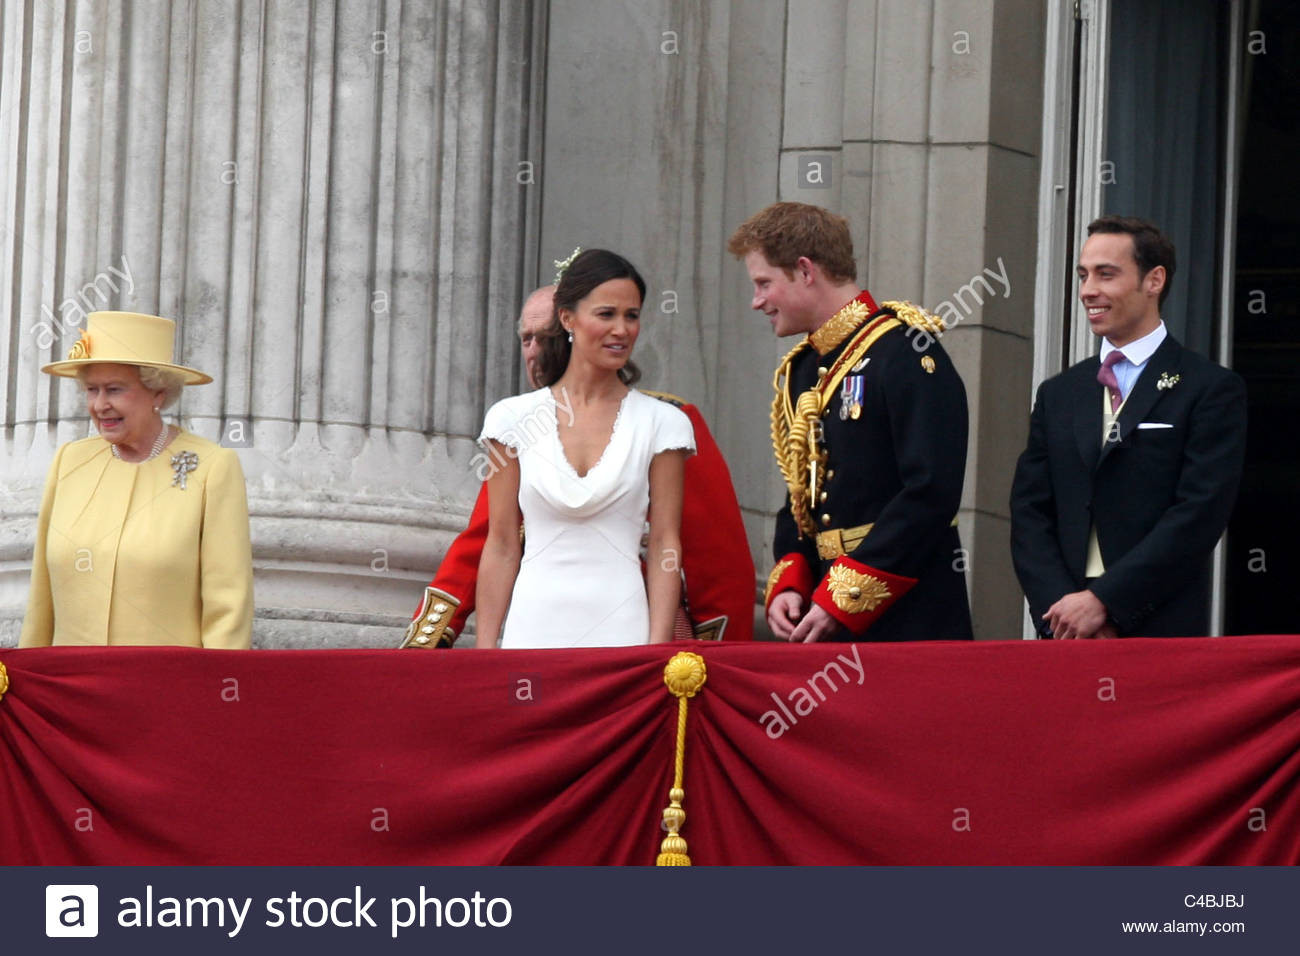 Kate Middleton Hochzeit Harry  PIPPA MIDDLETON AND PRINCE HARRY AT THE ROYAL WEDDING OF